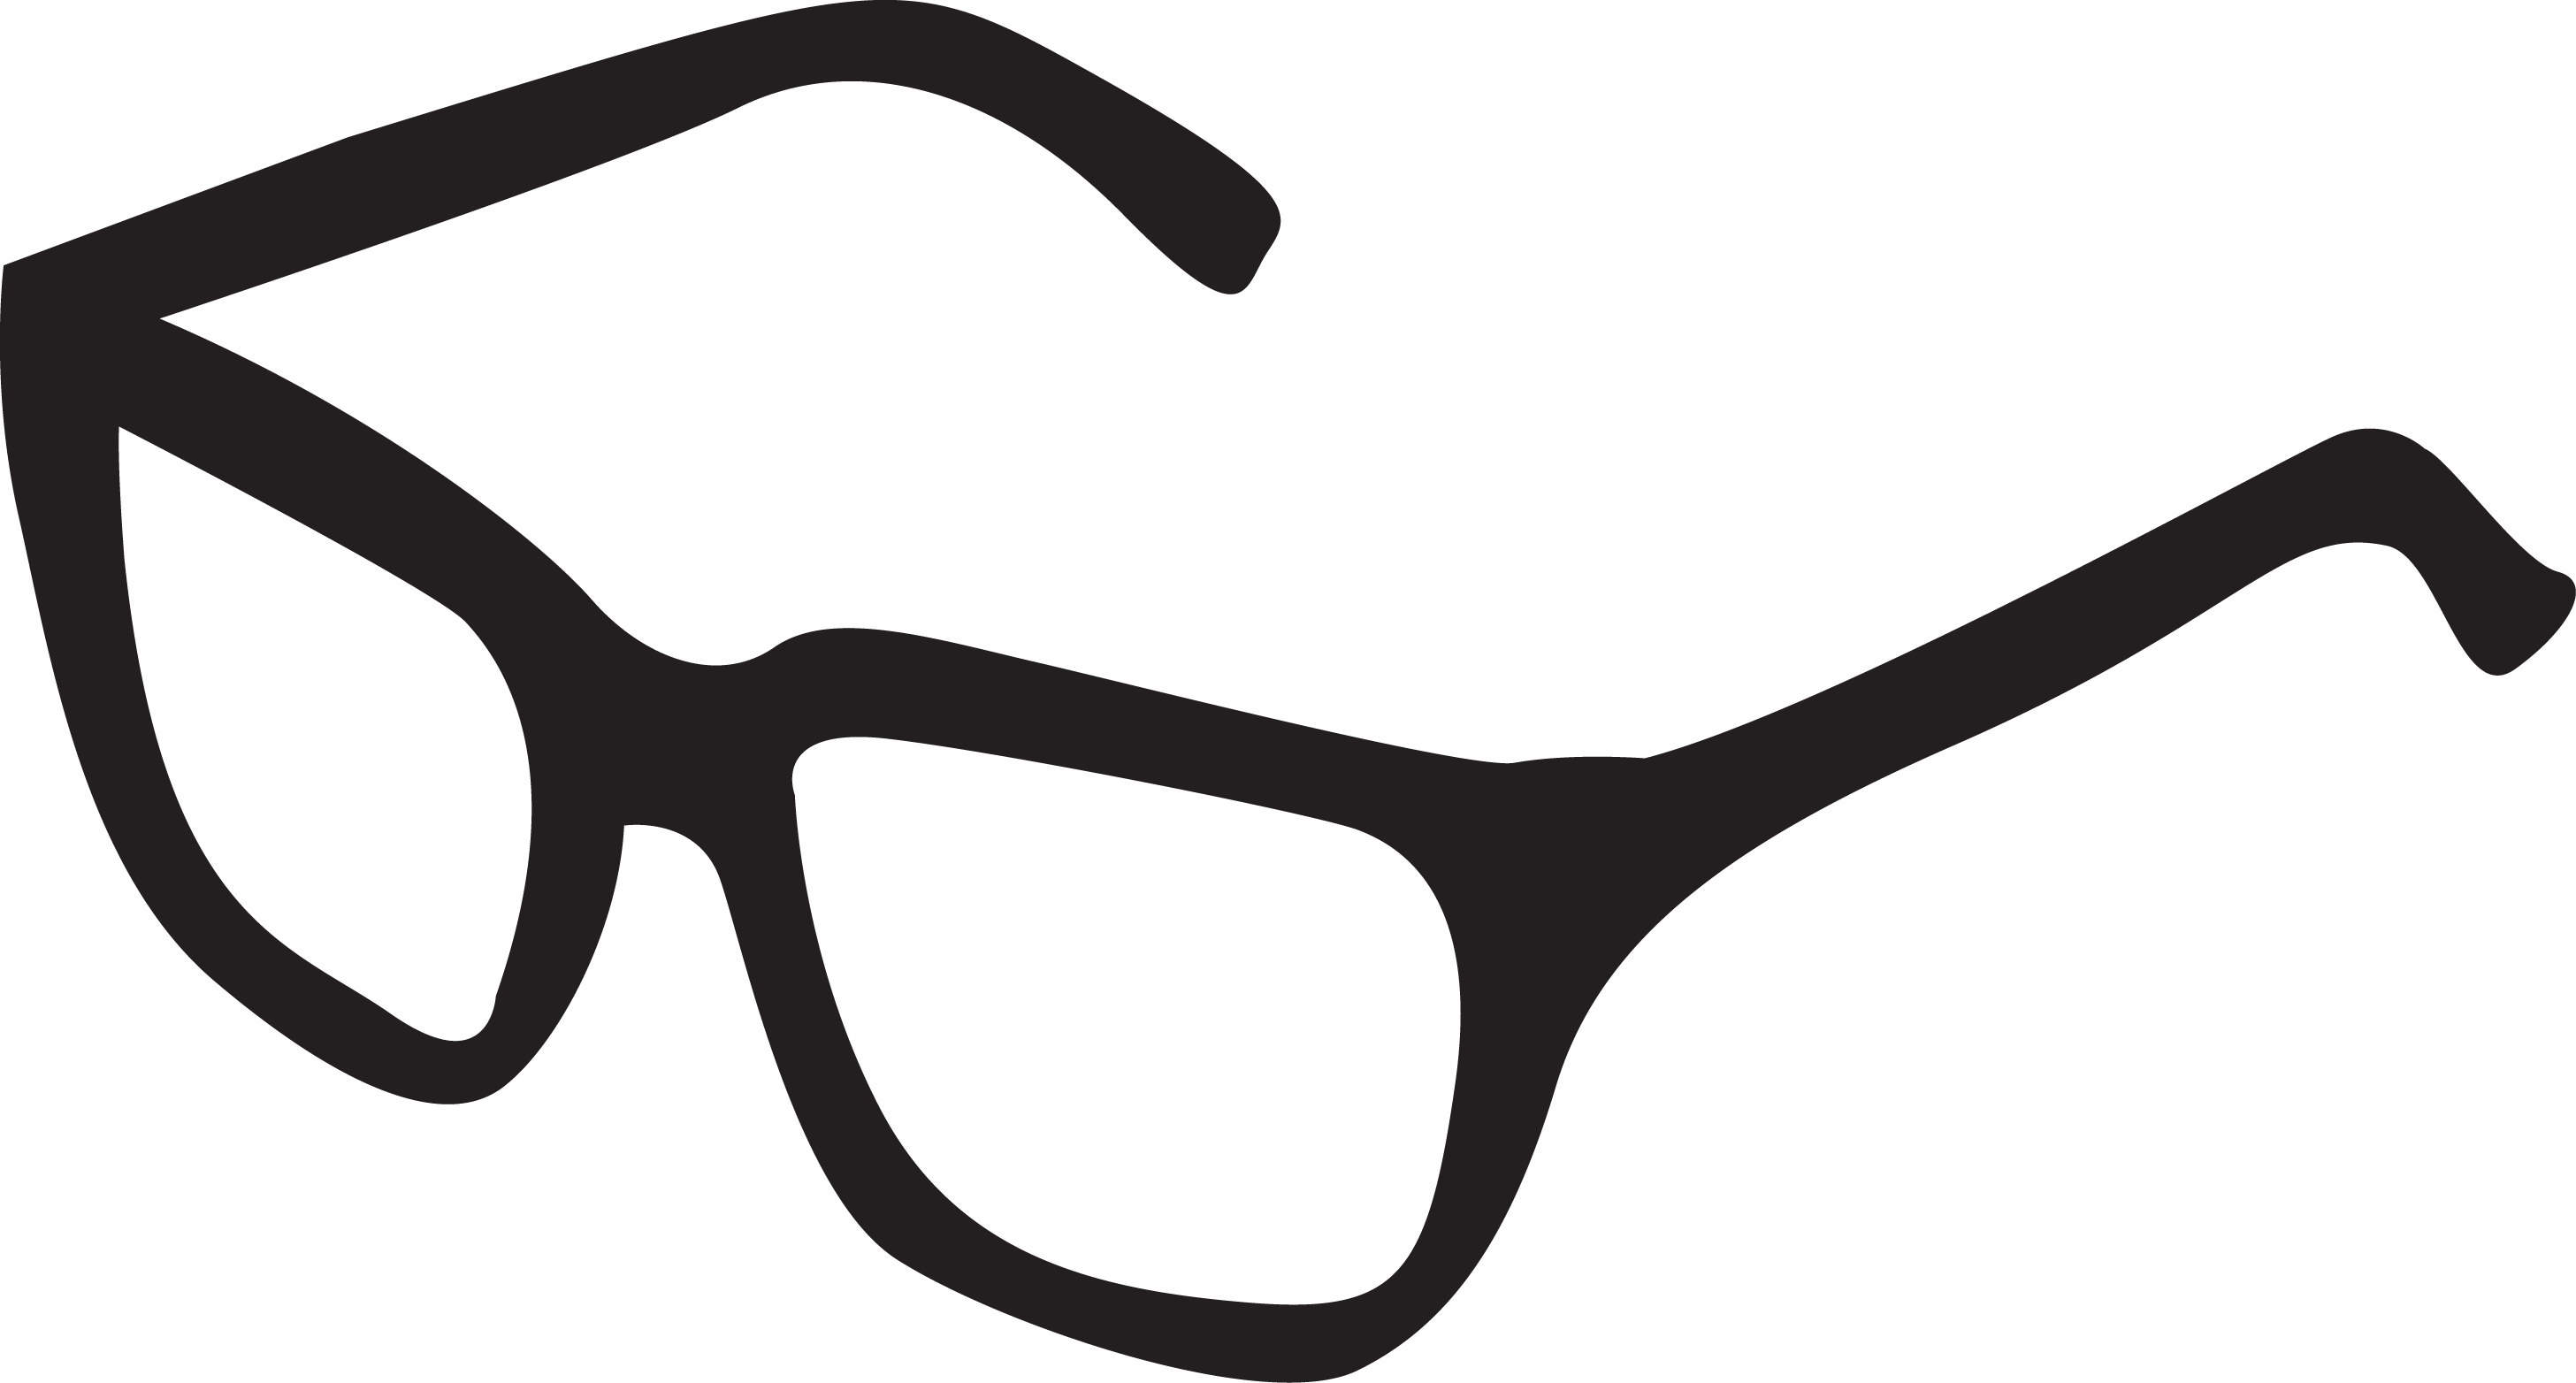 2913x1564 Drawn Glasses Transparent